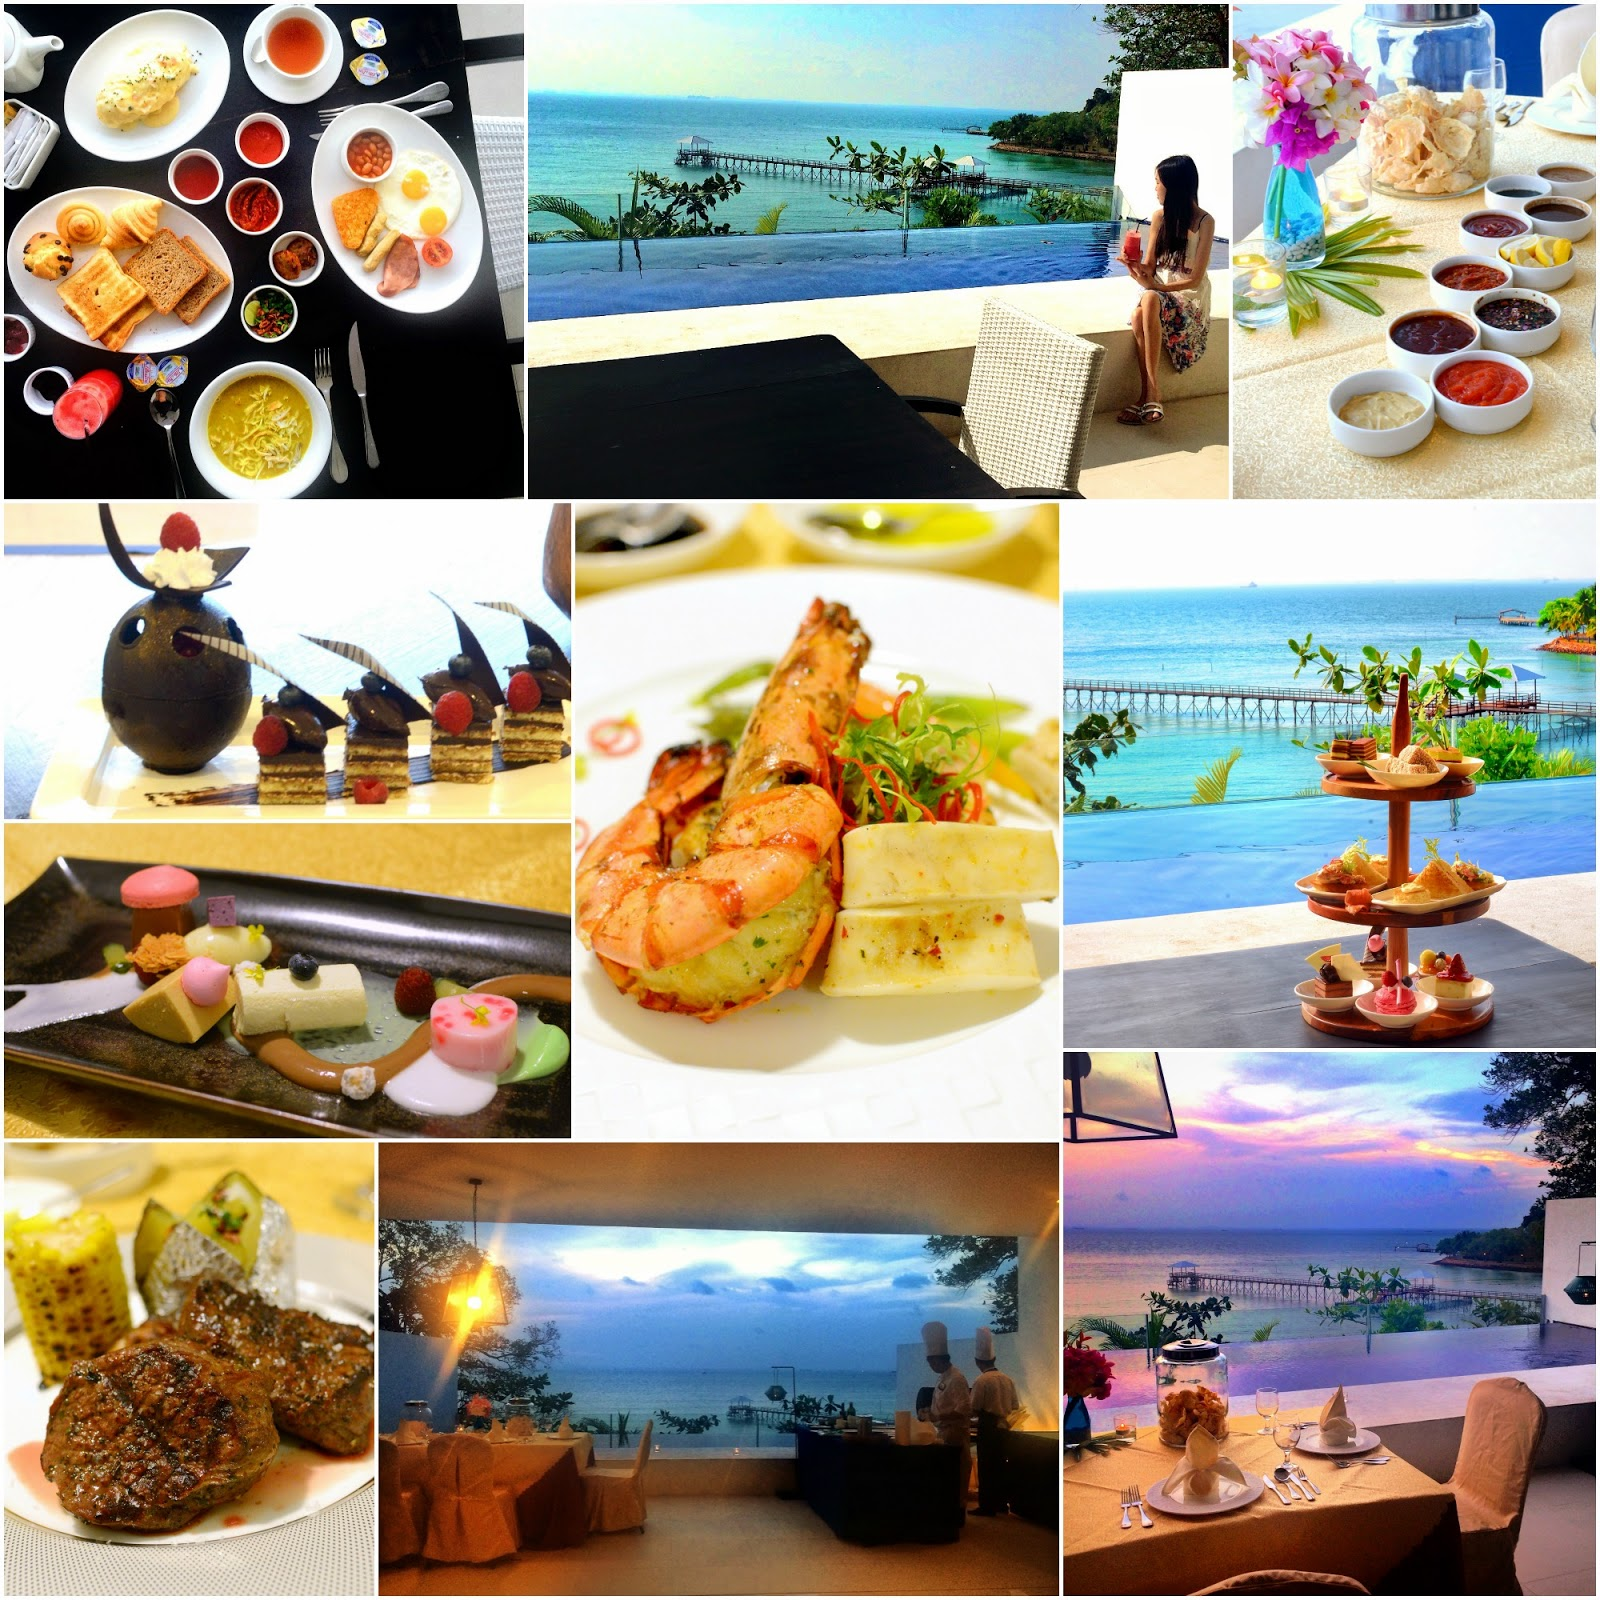 巴淡島:Montigo Resorts Nongsa Batam - In-Villa BBQ & Afternoon Tea